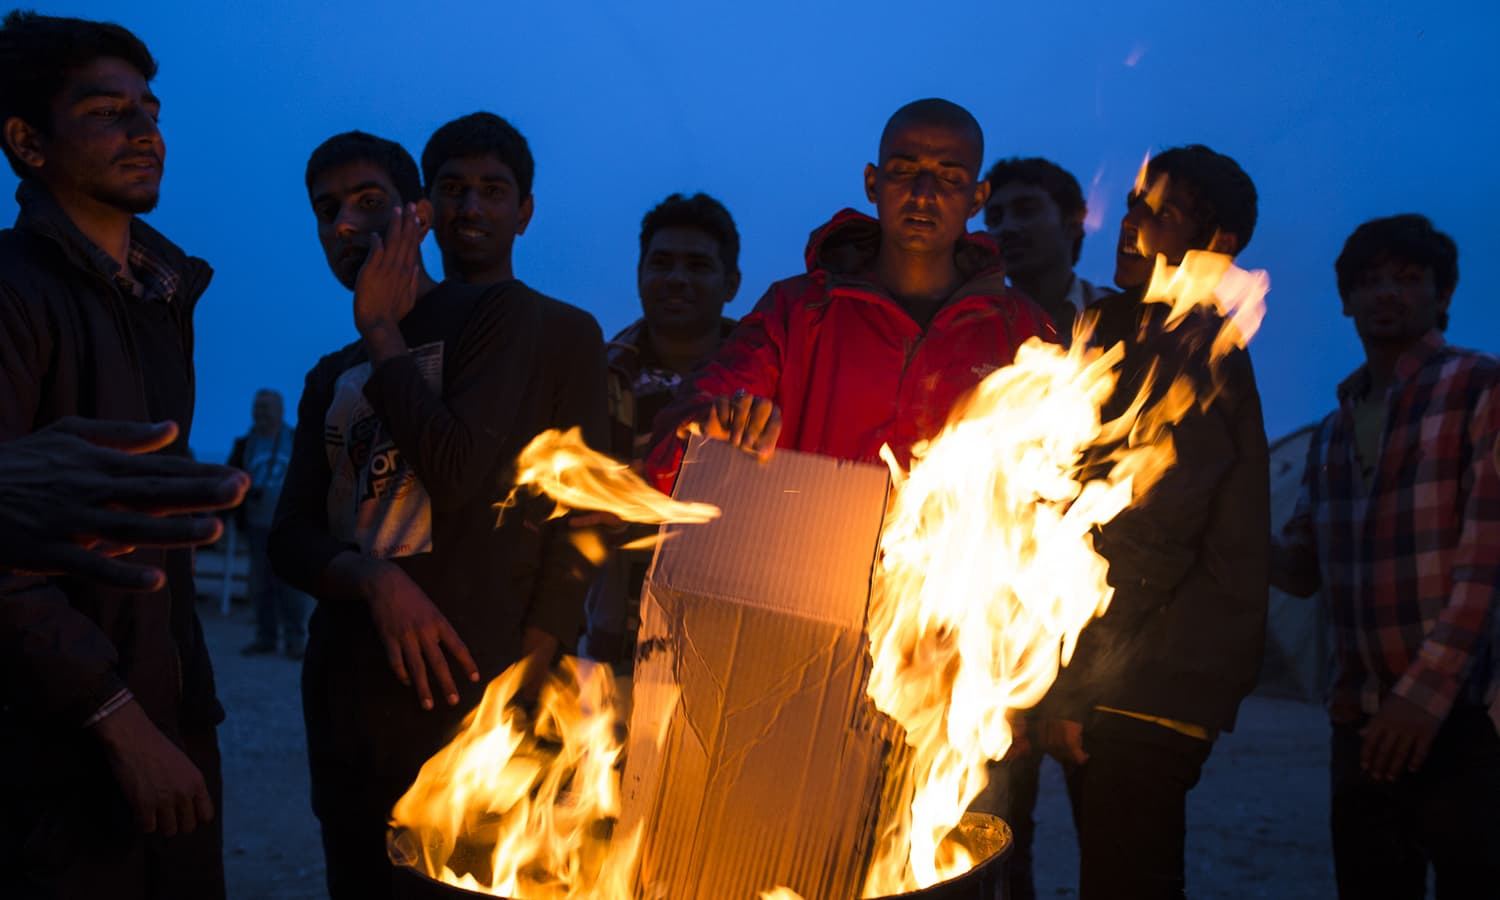 Pakistani men warm themselves by a fire in the evening at the No Borders Kitchen camp. The weather on the Greek island is hot during the day but drops significantly at night.